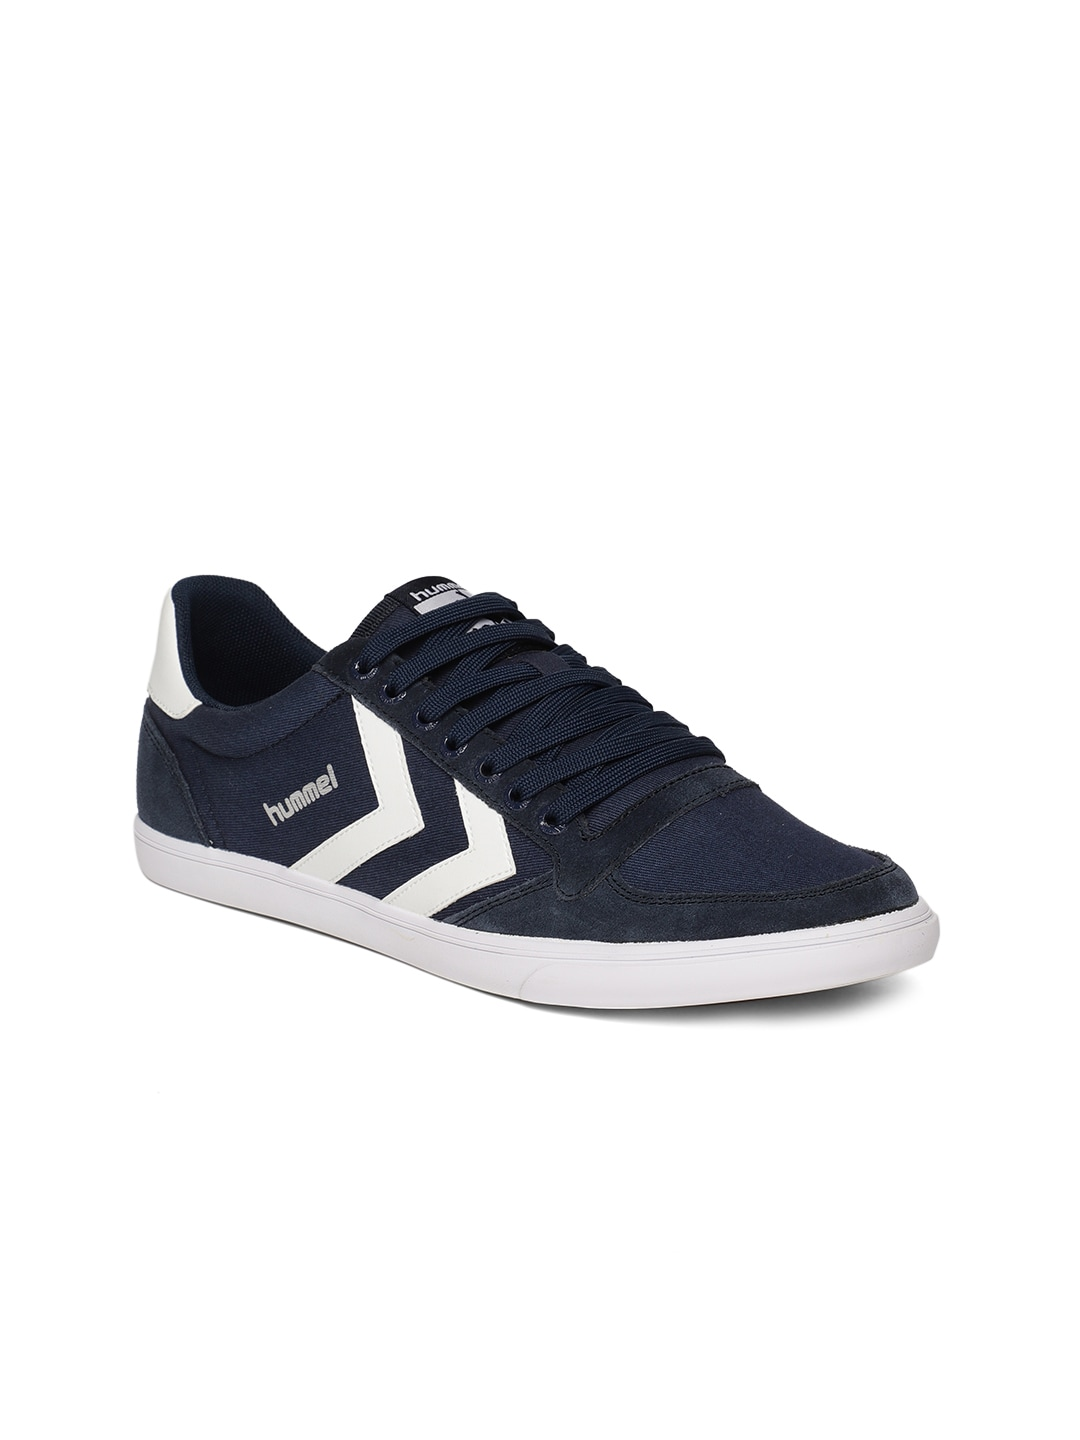 Hummel Shoes - Buy Latest Hummel Shoes Online in India  3e50a3100b